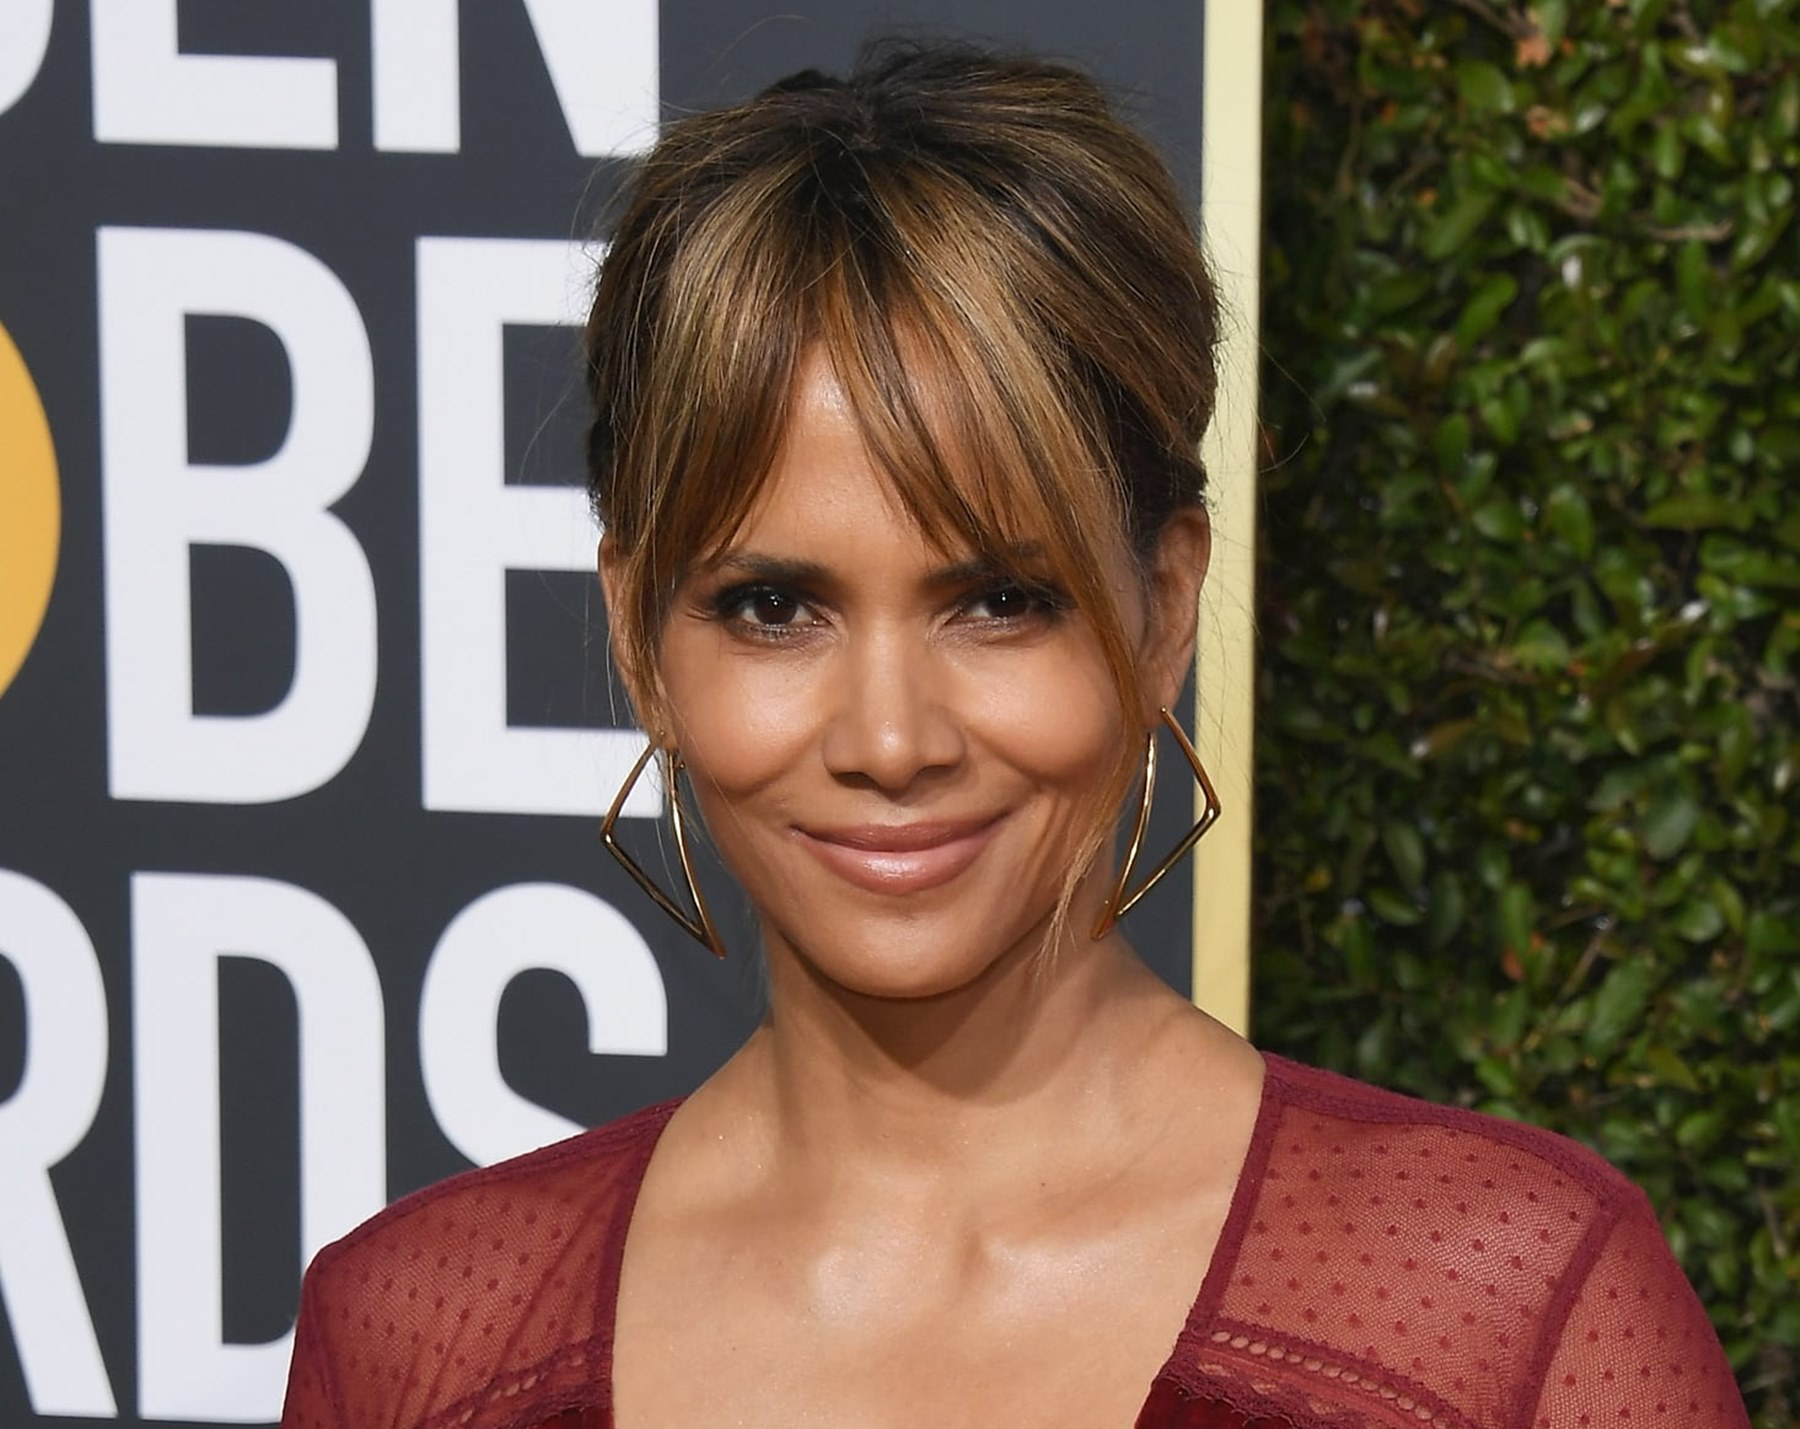 peter lee thomas dating halle berry